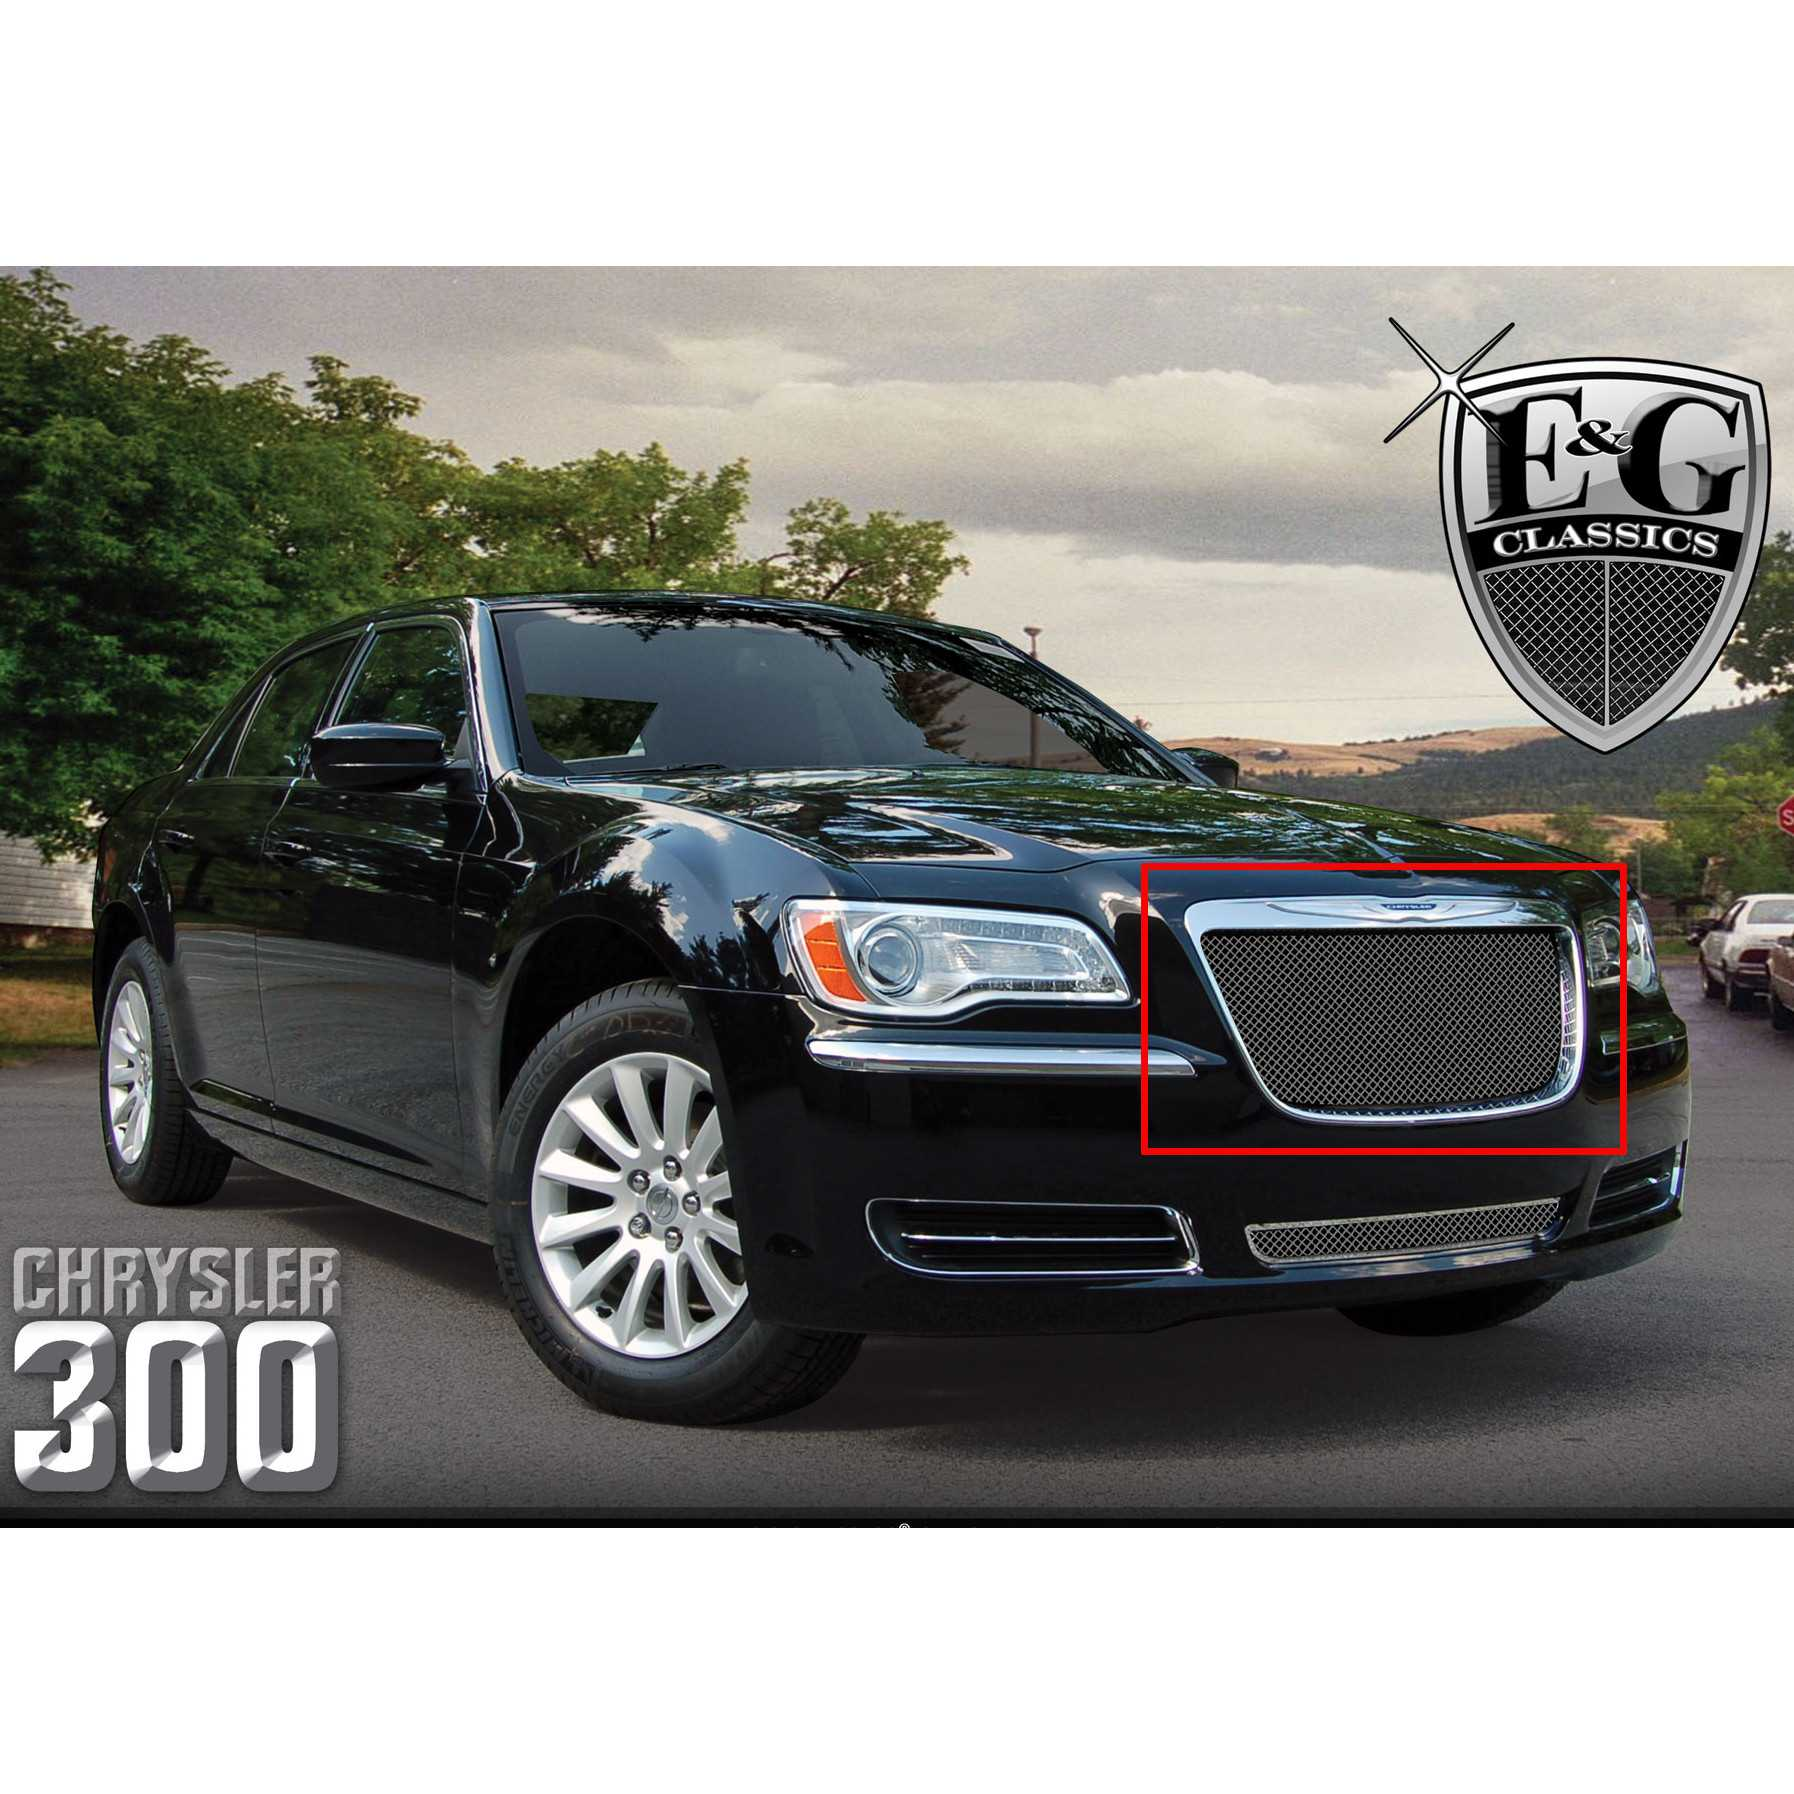 E g classicse g classics 2011 2014 chrysler 300 grille black ice fine mesh upper only grille 1099 b10u 11